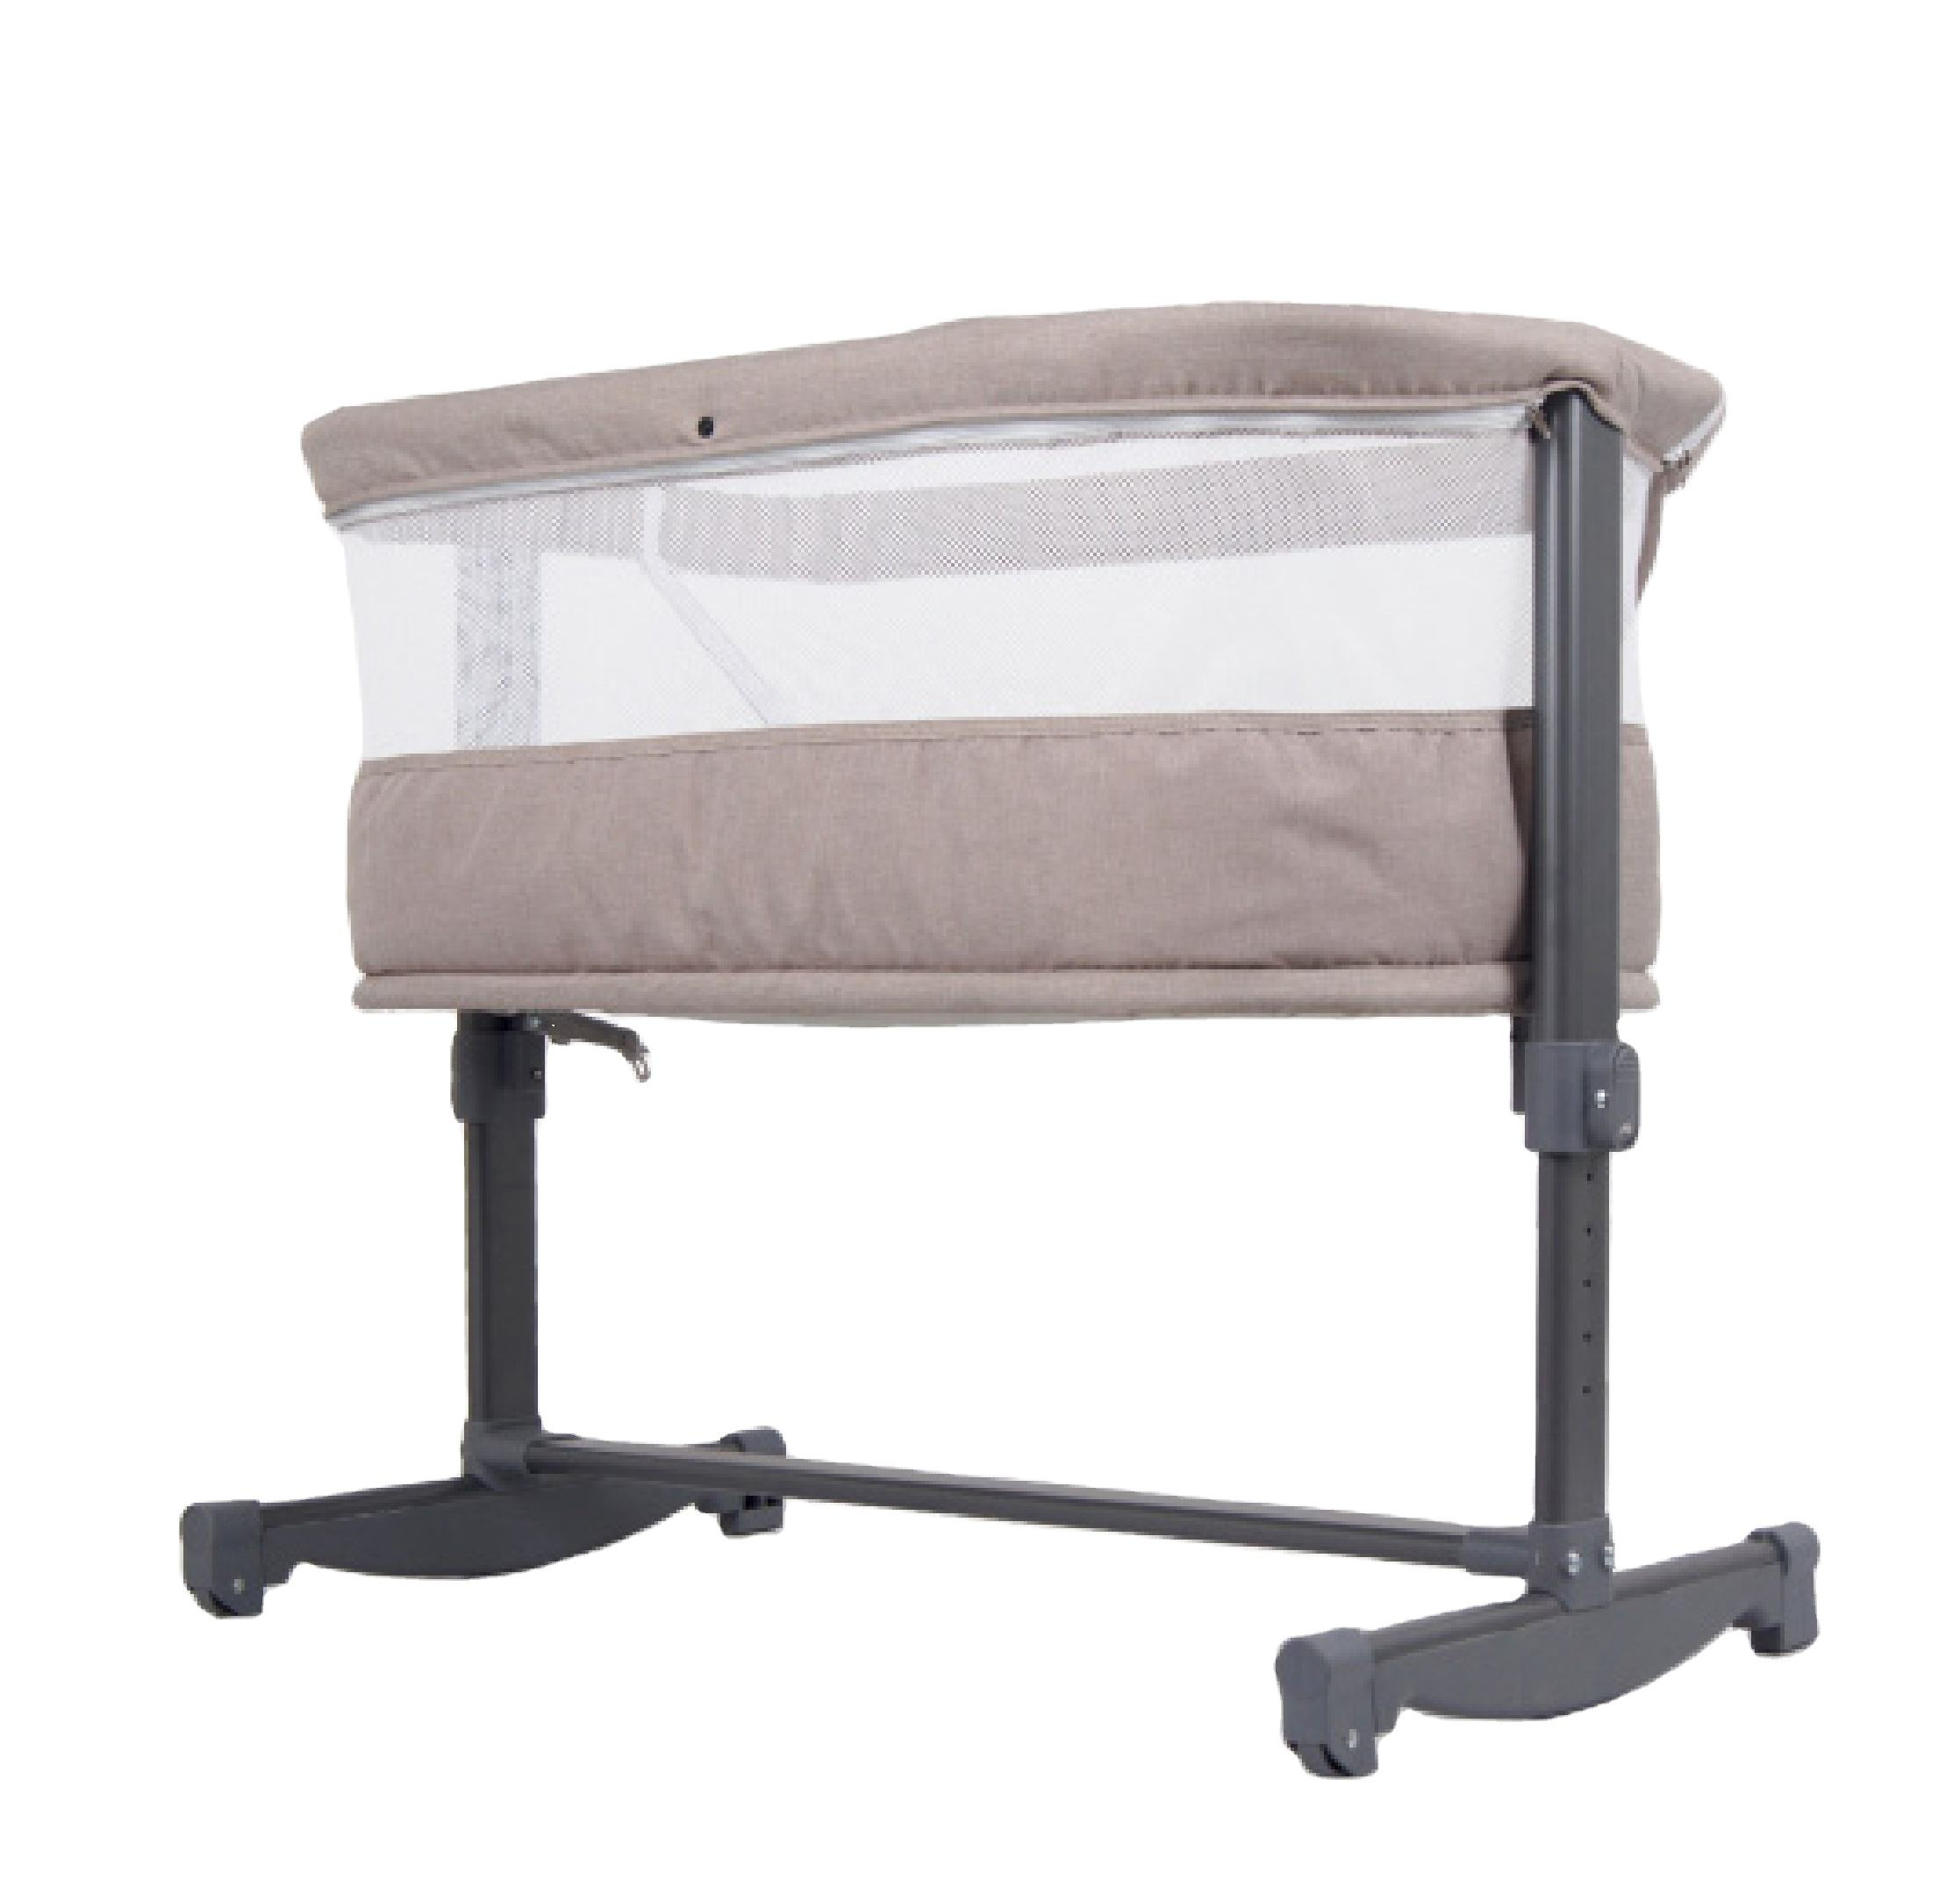 2021 Verkoper Baby Wieg Baby Wieg Babybedje <span class=keywords><strong>Bed</strong></span>